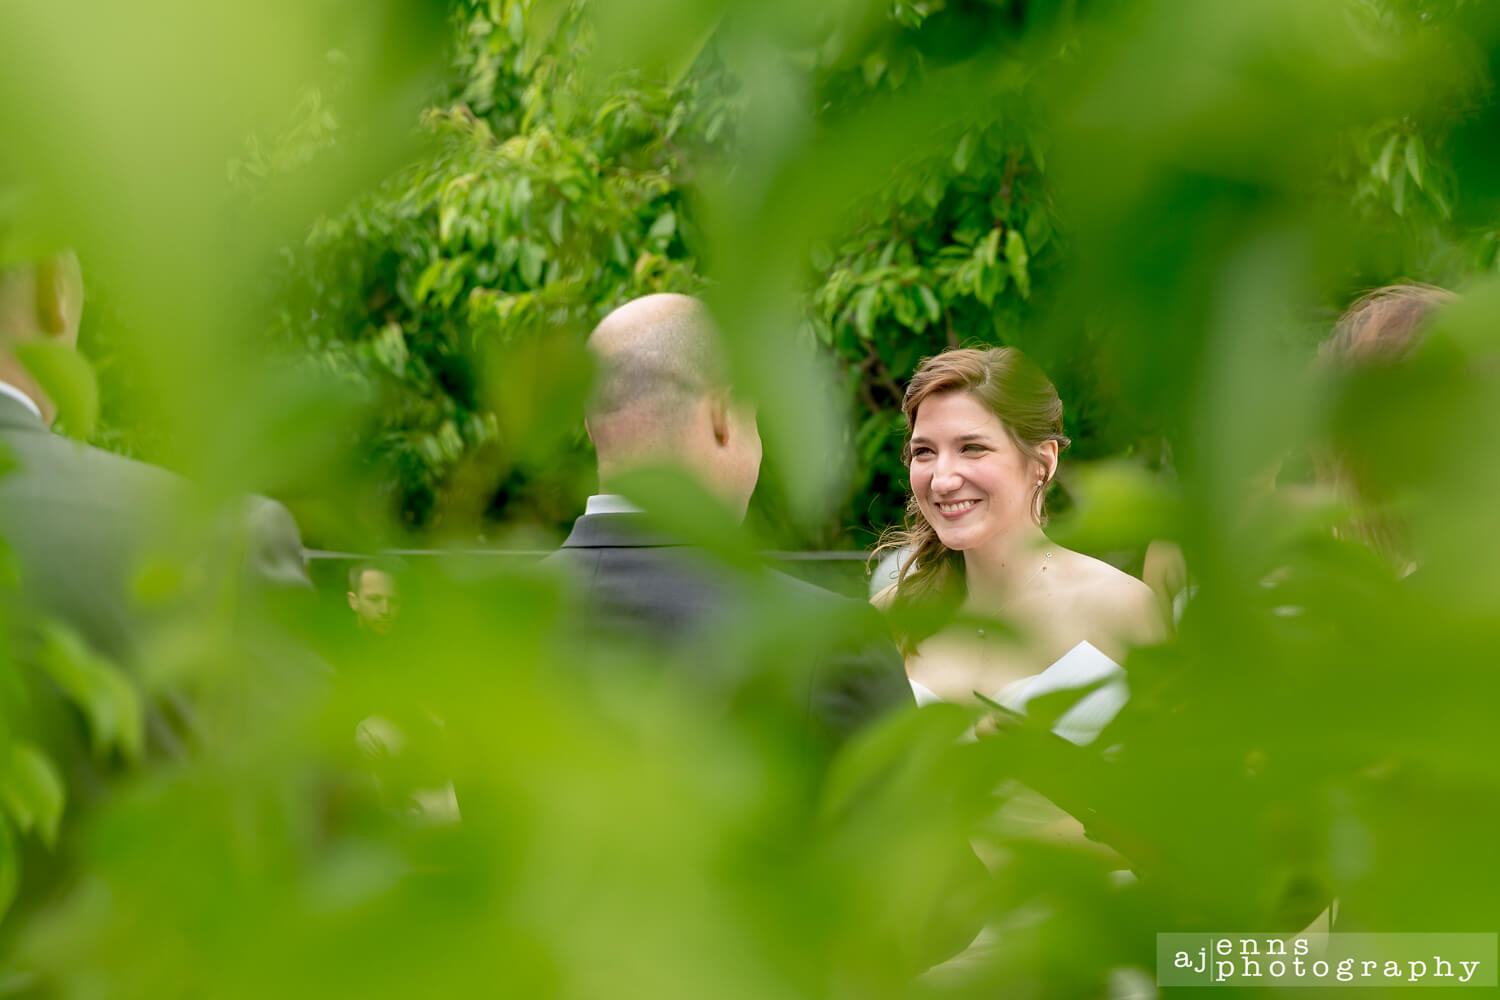 Peaking at the bride from behind a hole in a near by tree